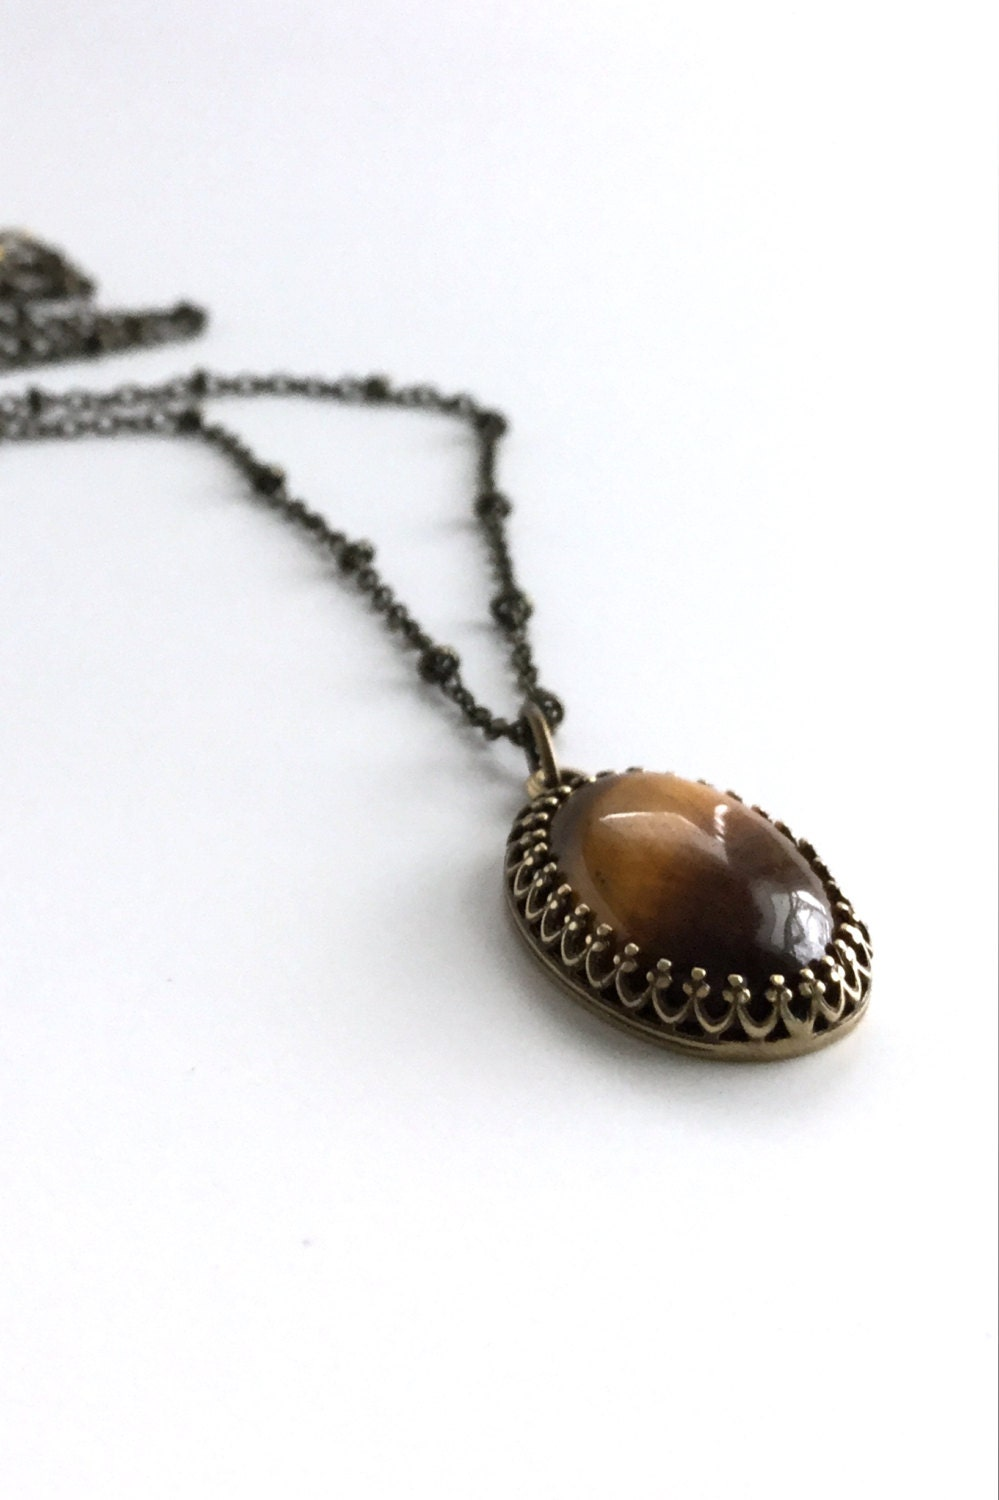 Tiger S Eye Necklace Oval Natural Stone Pendant Long